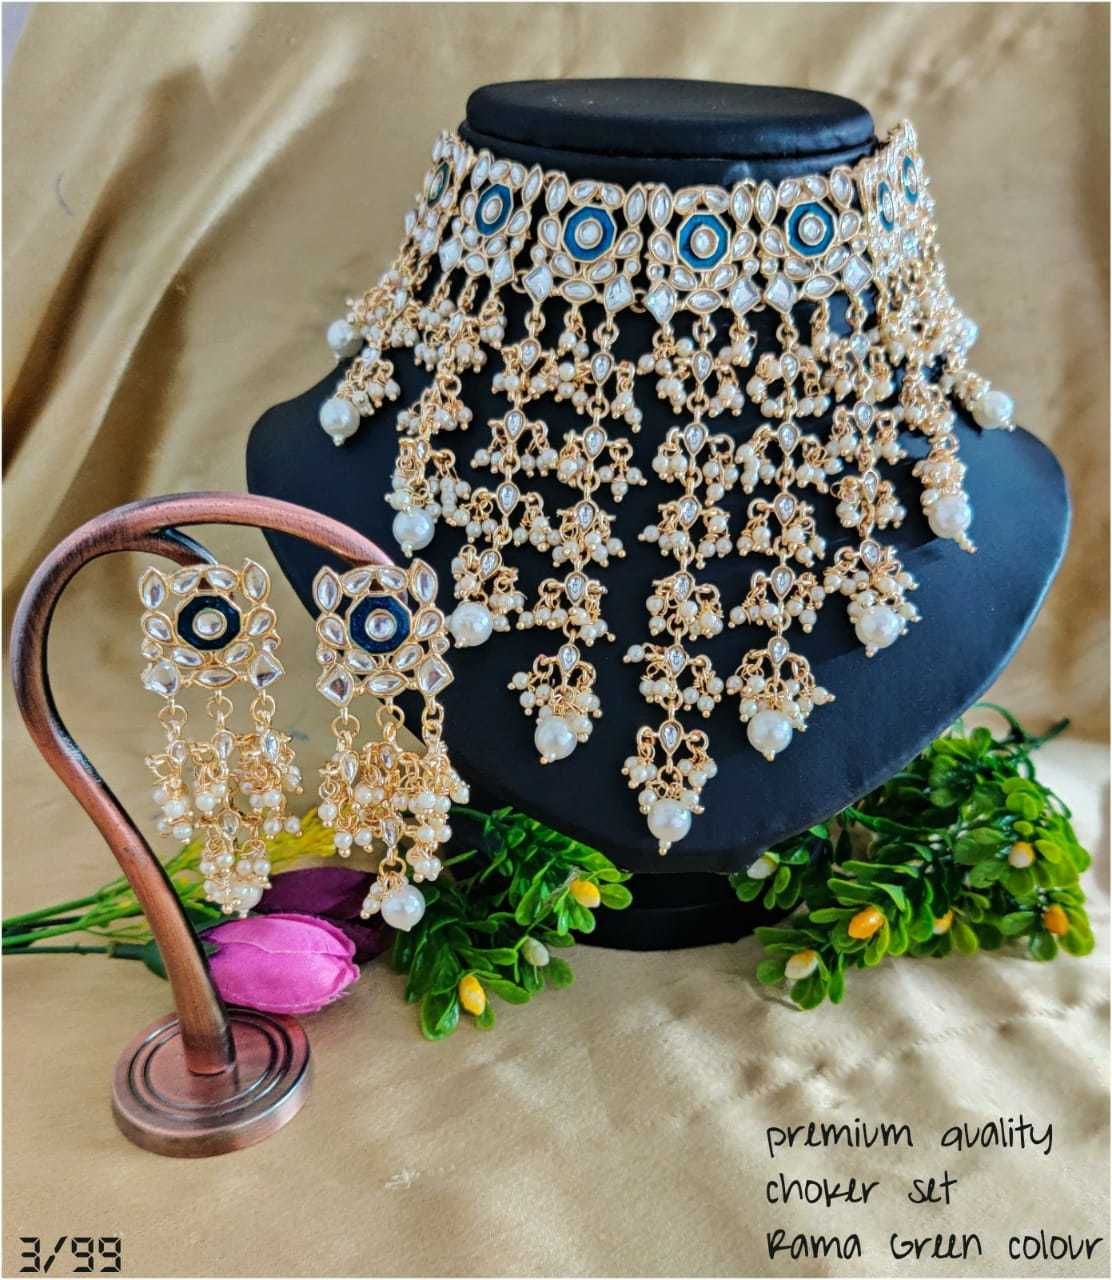 Choker Stone Necklace with Earrings and Maang Tika